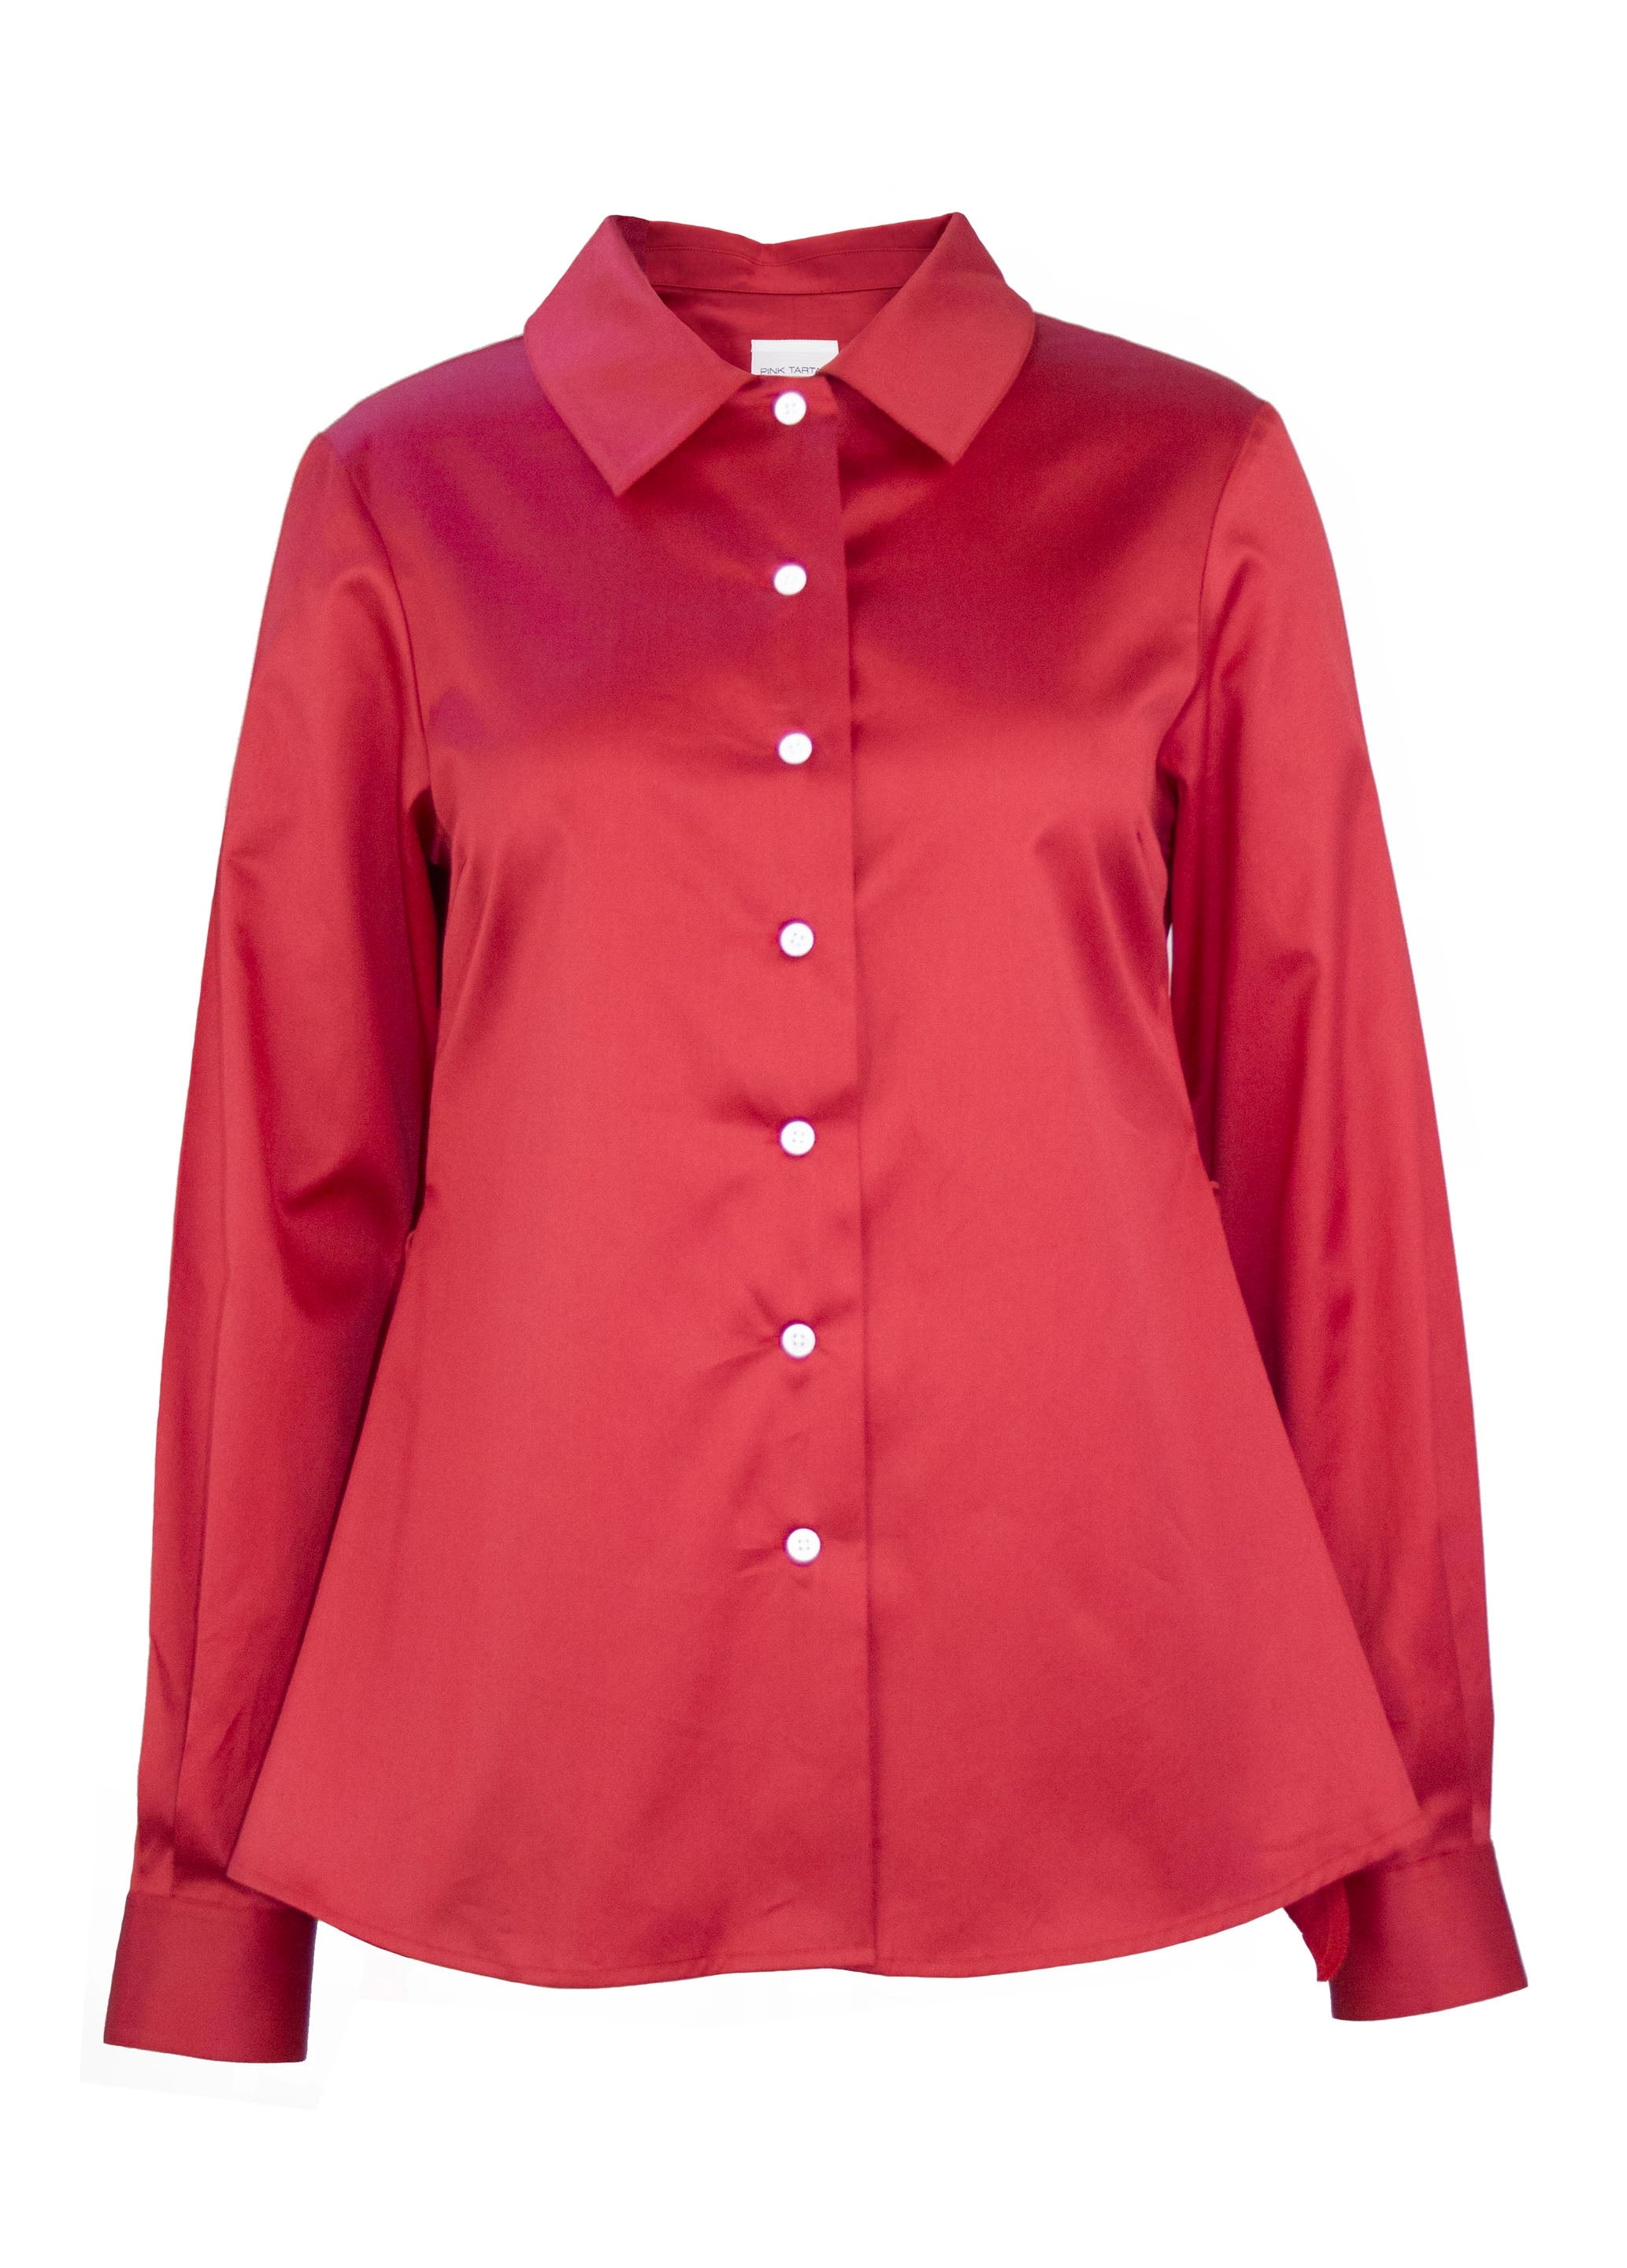 Ruffle Back Shirt - Red